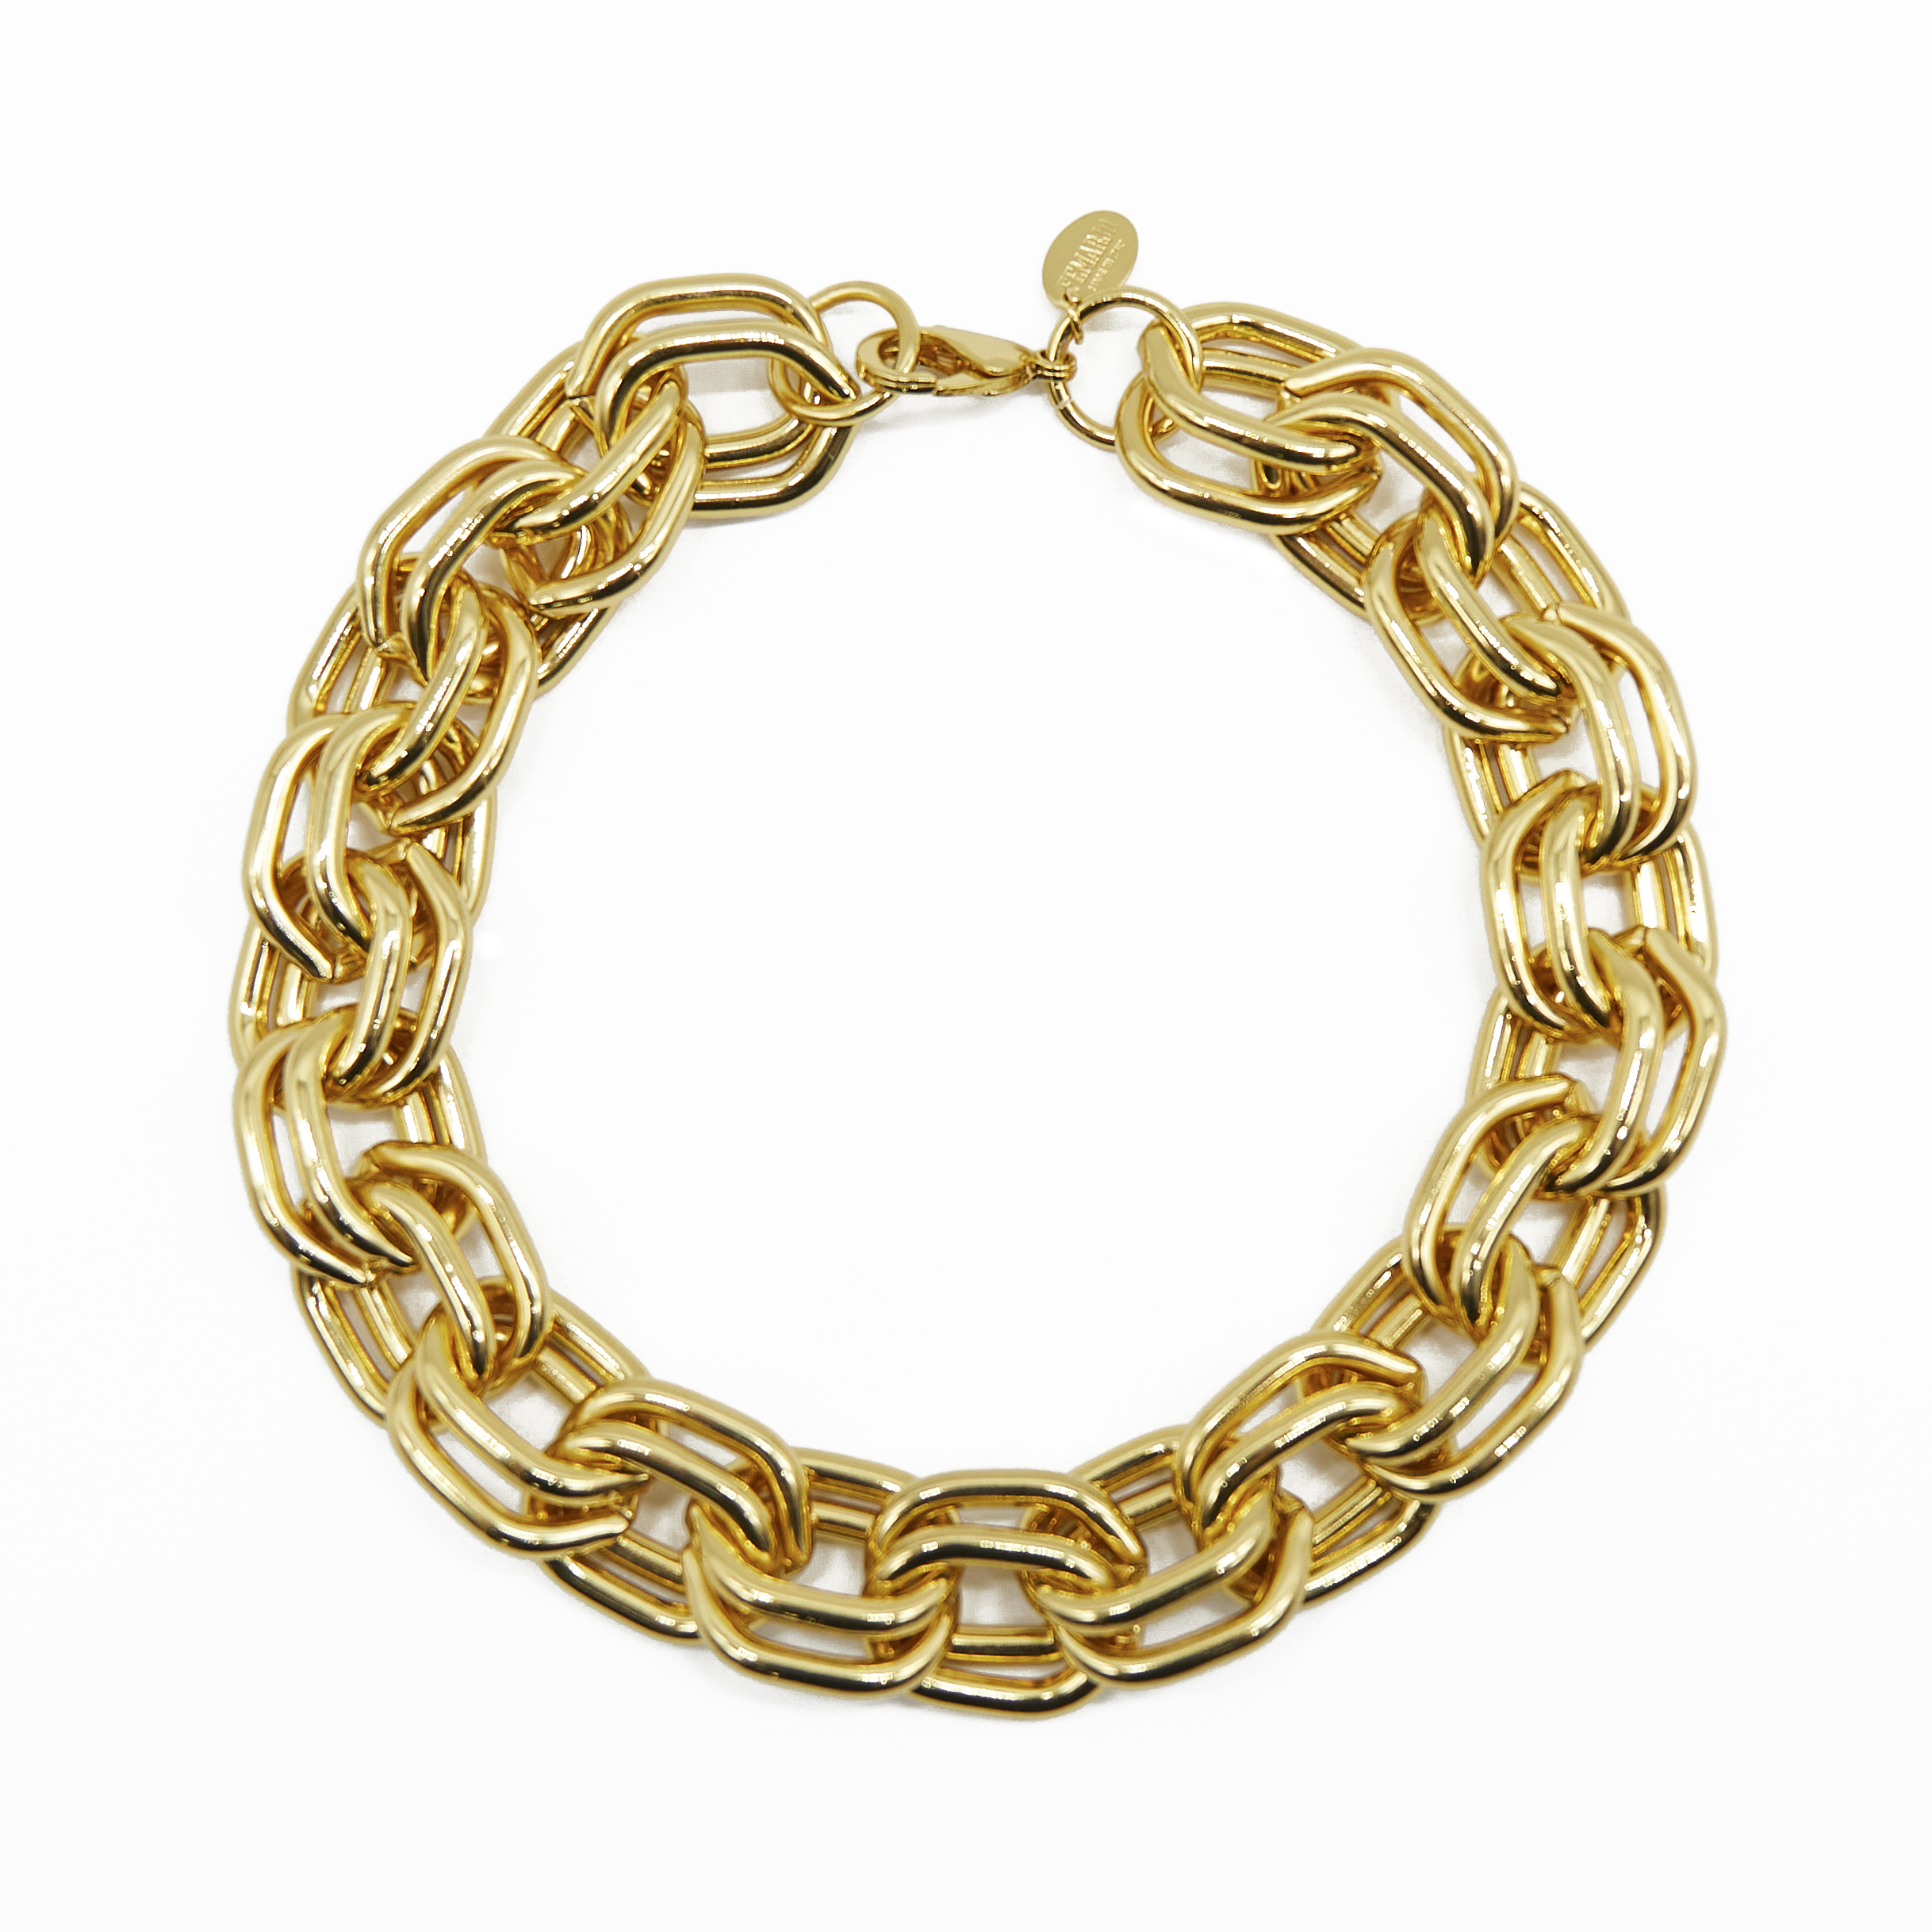 DUO GOLD NECKLACE